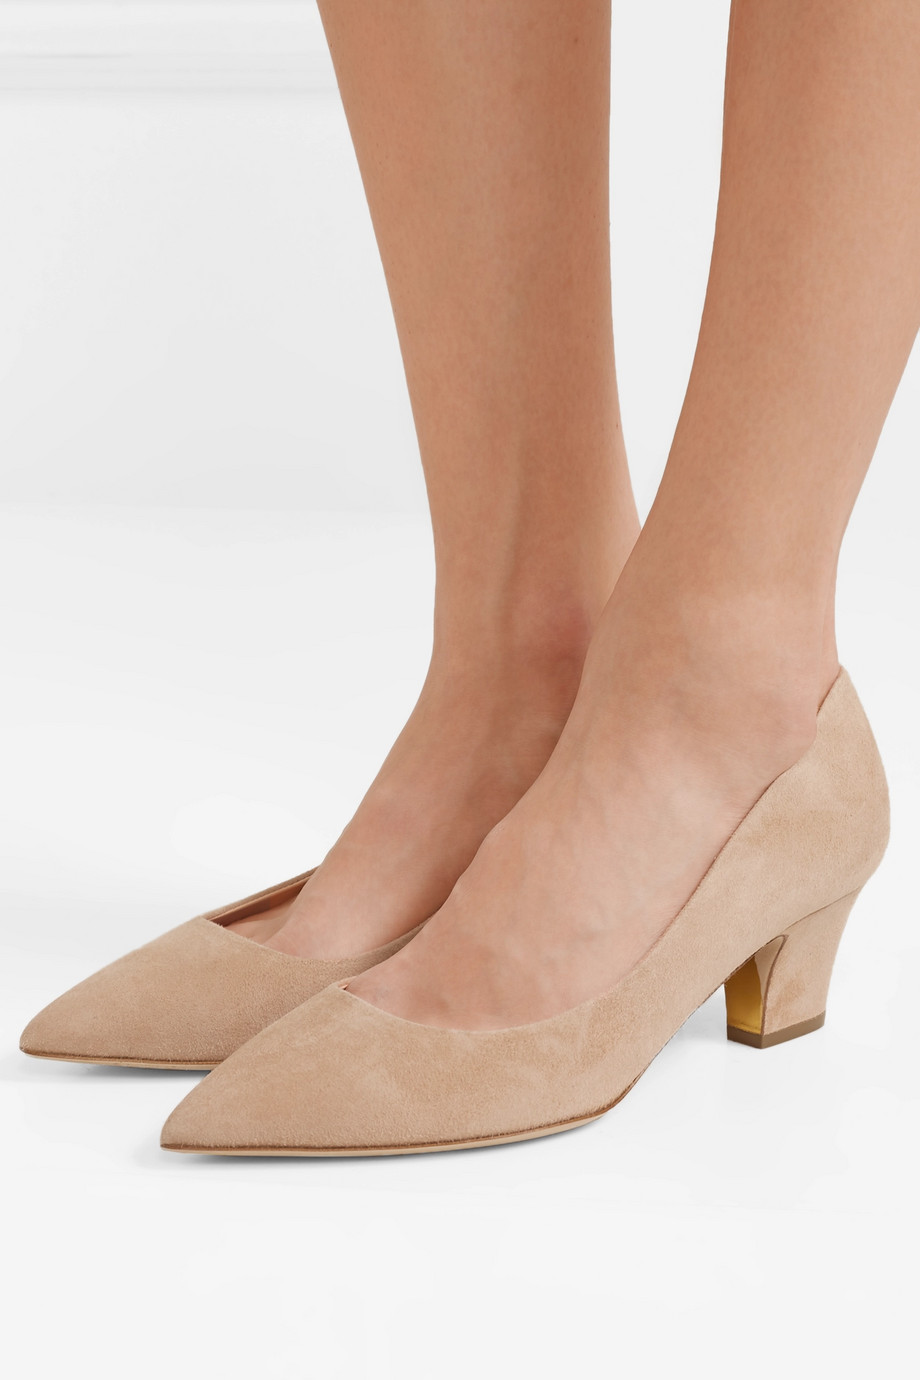 Suede pumps Rupert Sanderson buy Suede pumps Rupert Sanderson internet shop